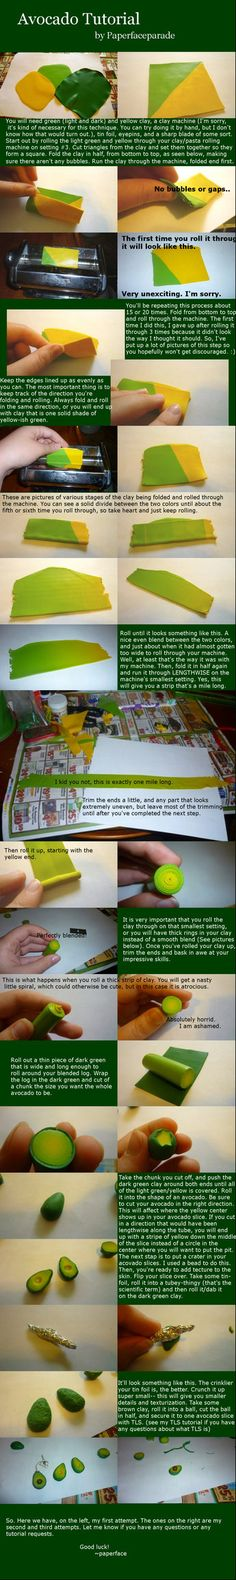 Avocado Cane/Skinner Blend Polymer Clay Tutorial by ~paperfaceparade on deviantART